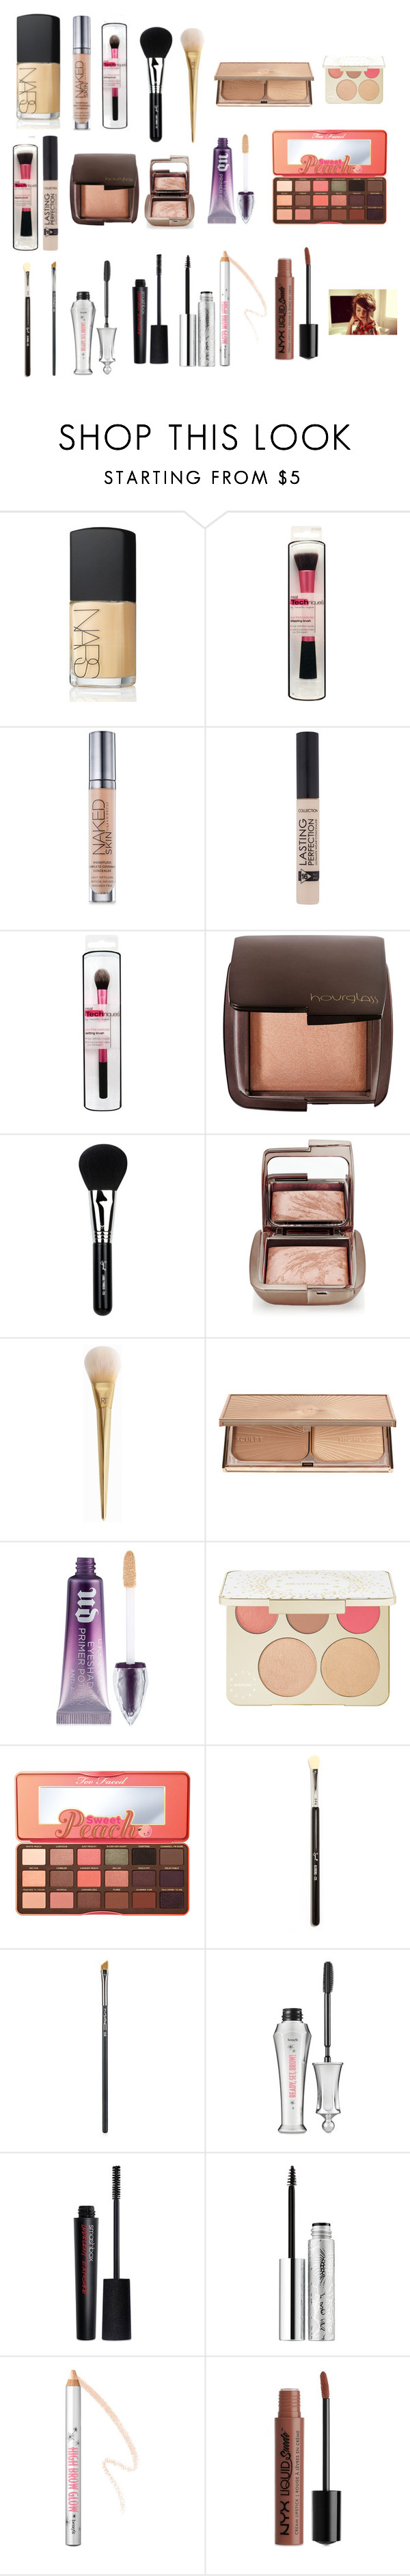 Zoella Bronzed Nude Summer Makeup Look By Zoellaispretty On Polyvore Featuring Beauty